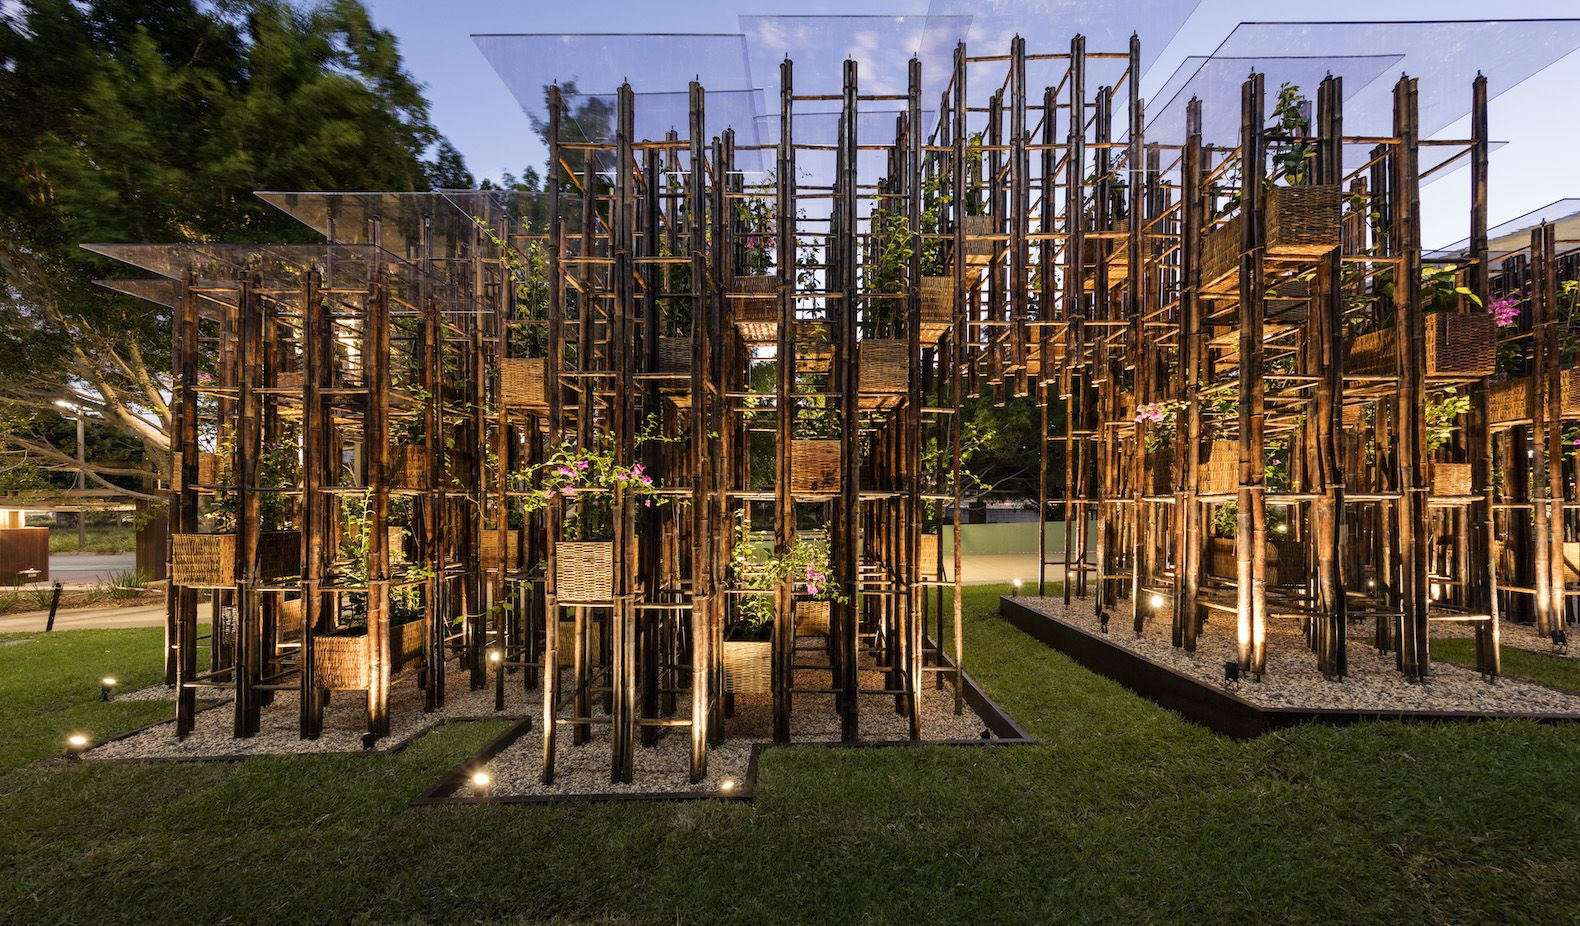 Green Ladder Bamboo Pavilion by Vo Trong Nghia